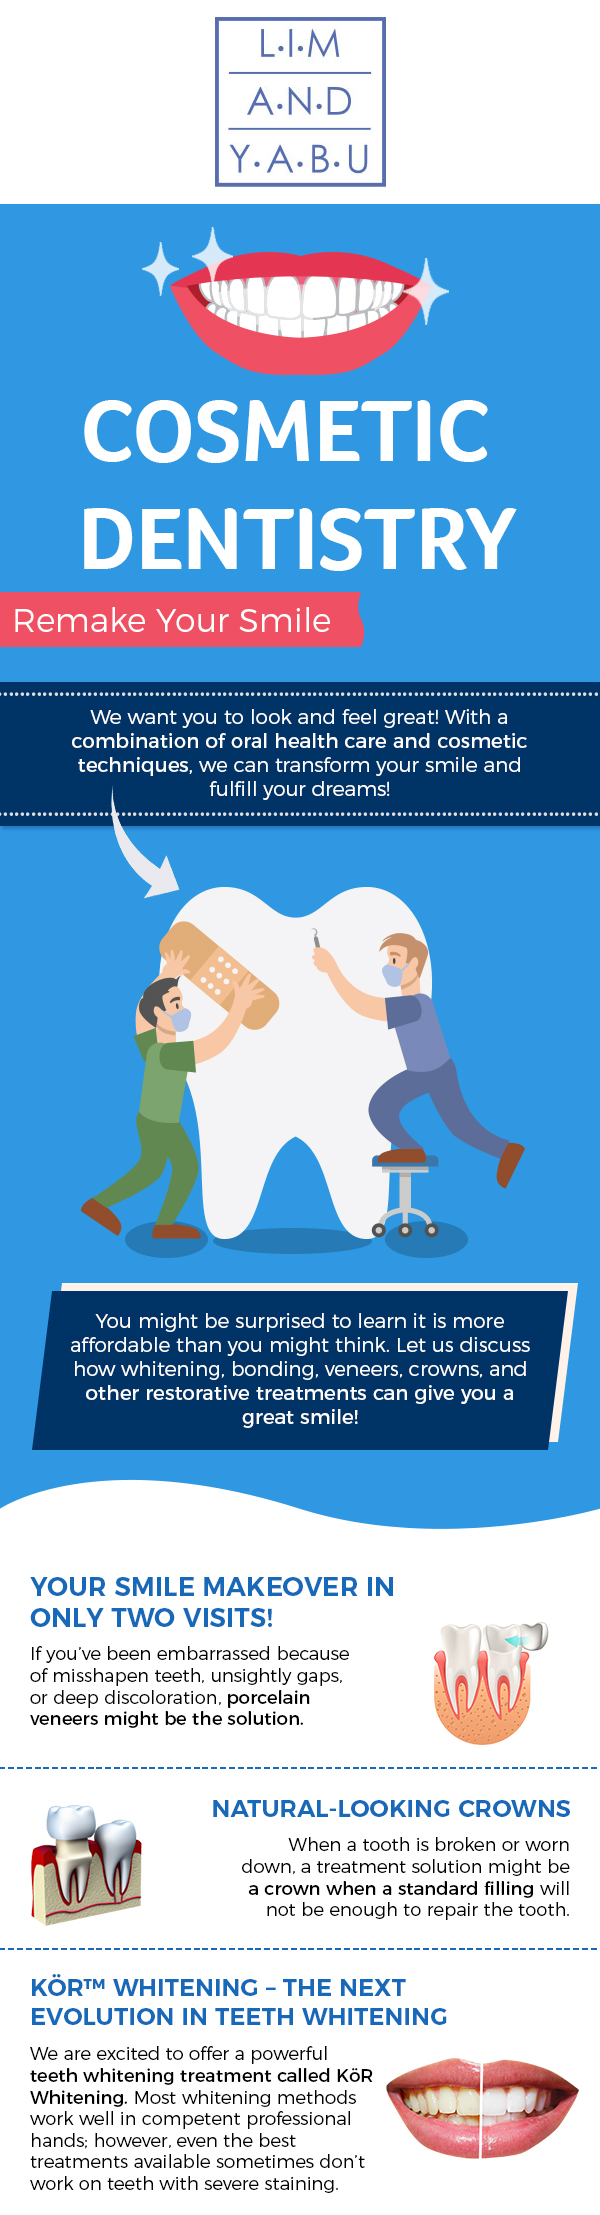 Lim and Yabu – Oakland CA's Trusted Cosmetic Dentistry Practice